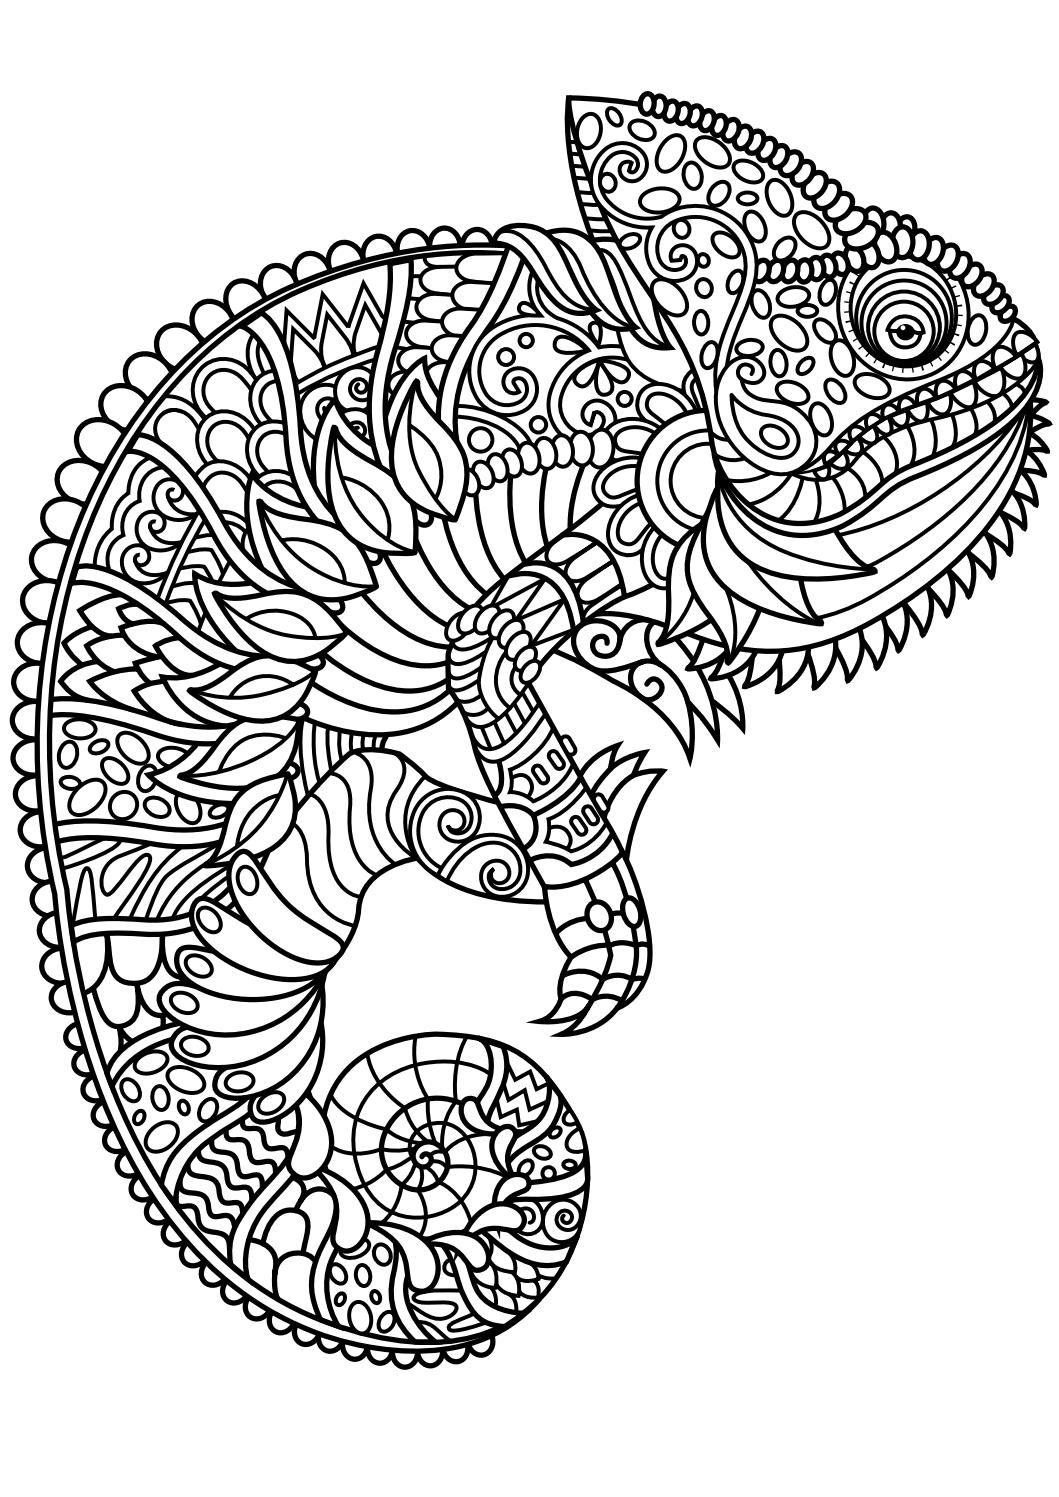 Animal Coloring Pages Pdf Animal Coloring Pages Is A Free Adult Coloring  Book With 20 Different Animal Pictures To Color: Horse Coloring Pages, Dog,  Cat, ...